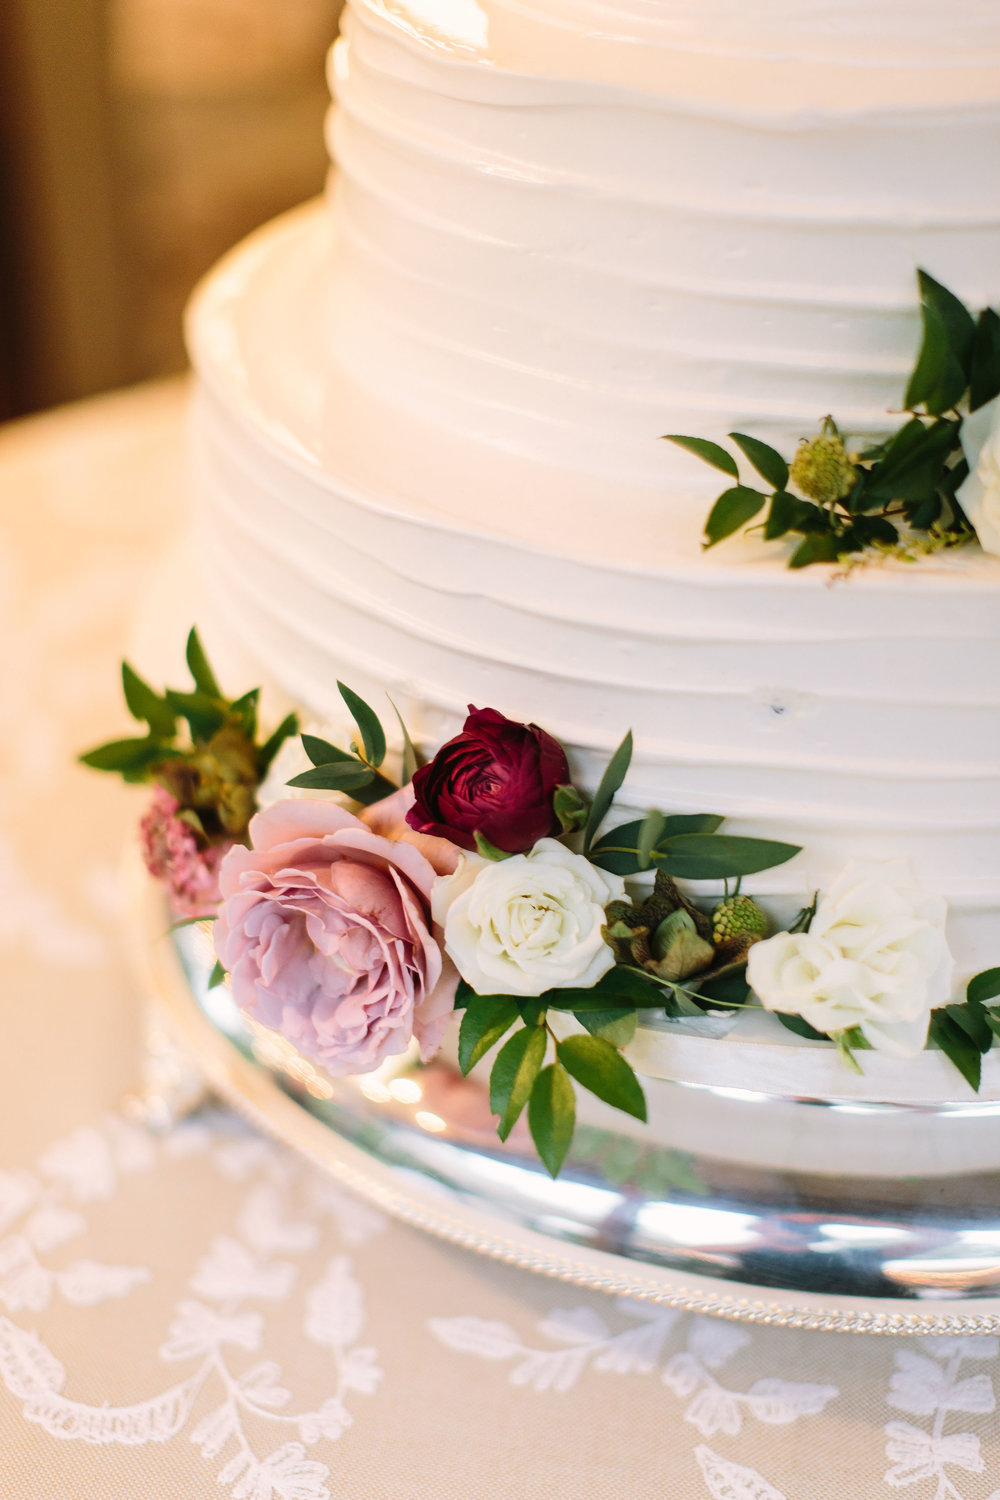 White, 4-tired wedding cake with clustered floral accents using garden roses, ranunculus, hellebores, and greenery // Nashville Wedding Floral Design